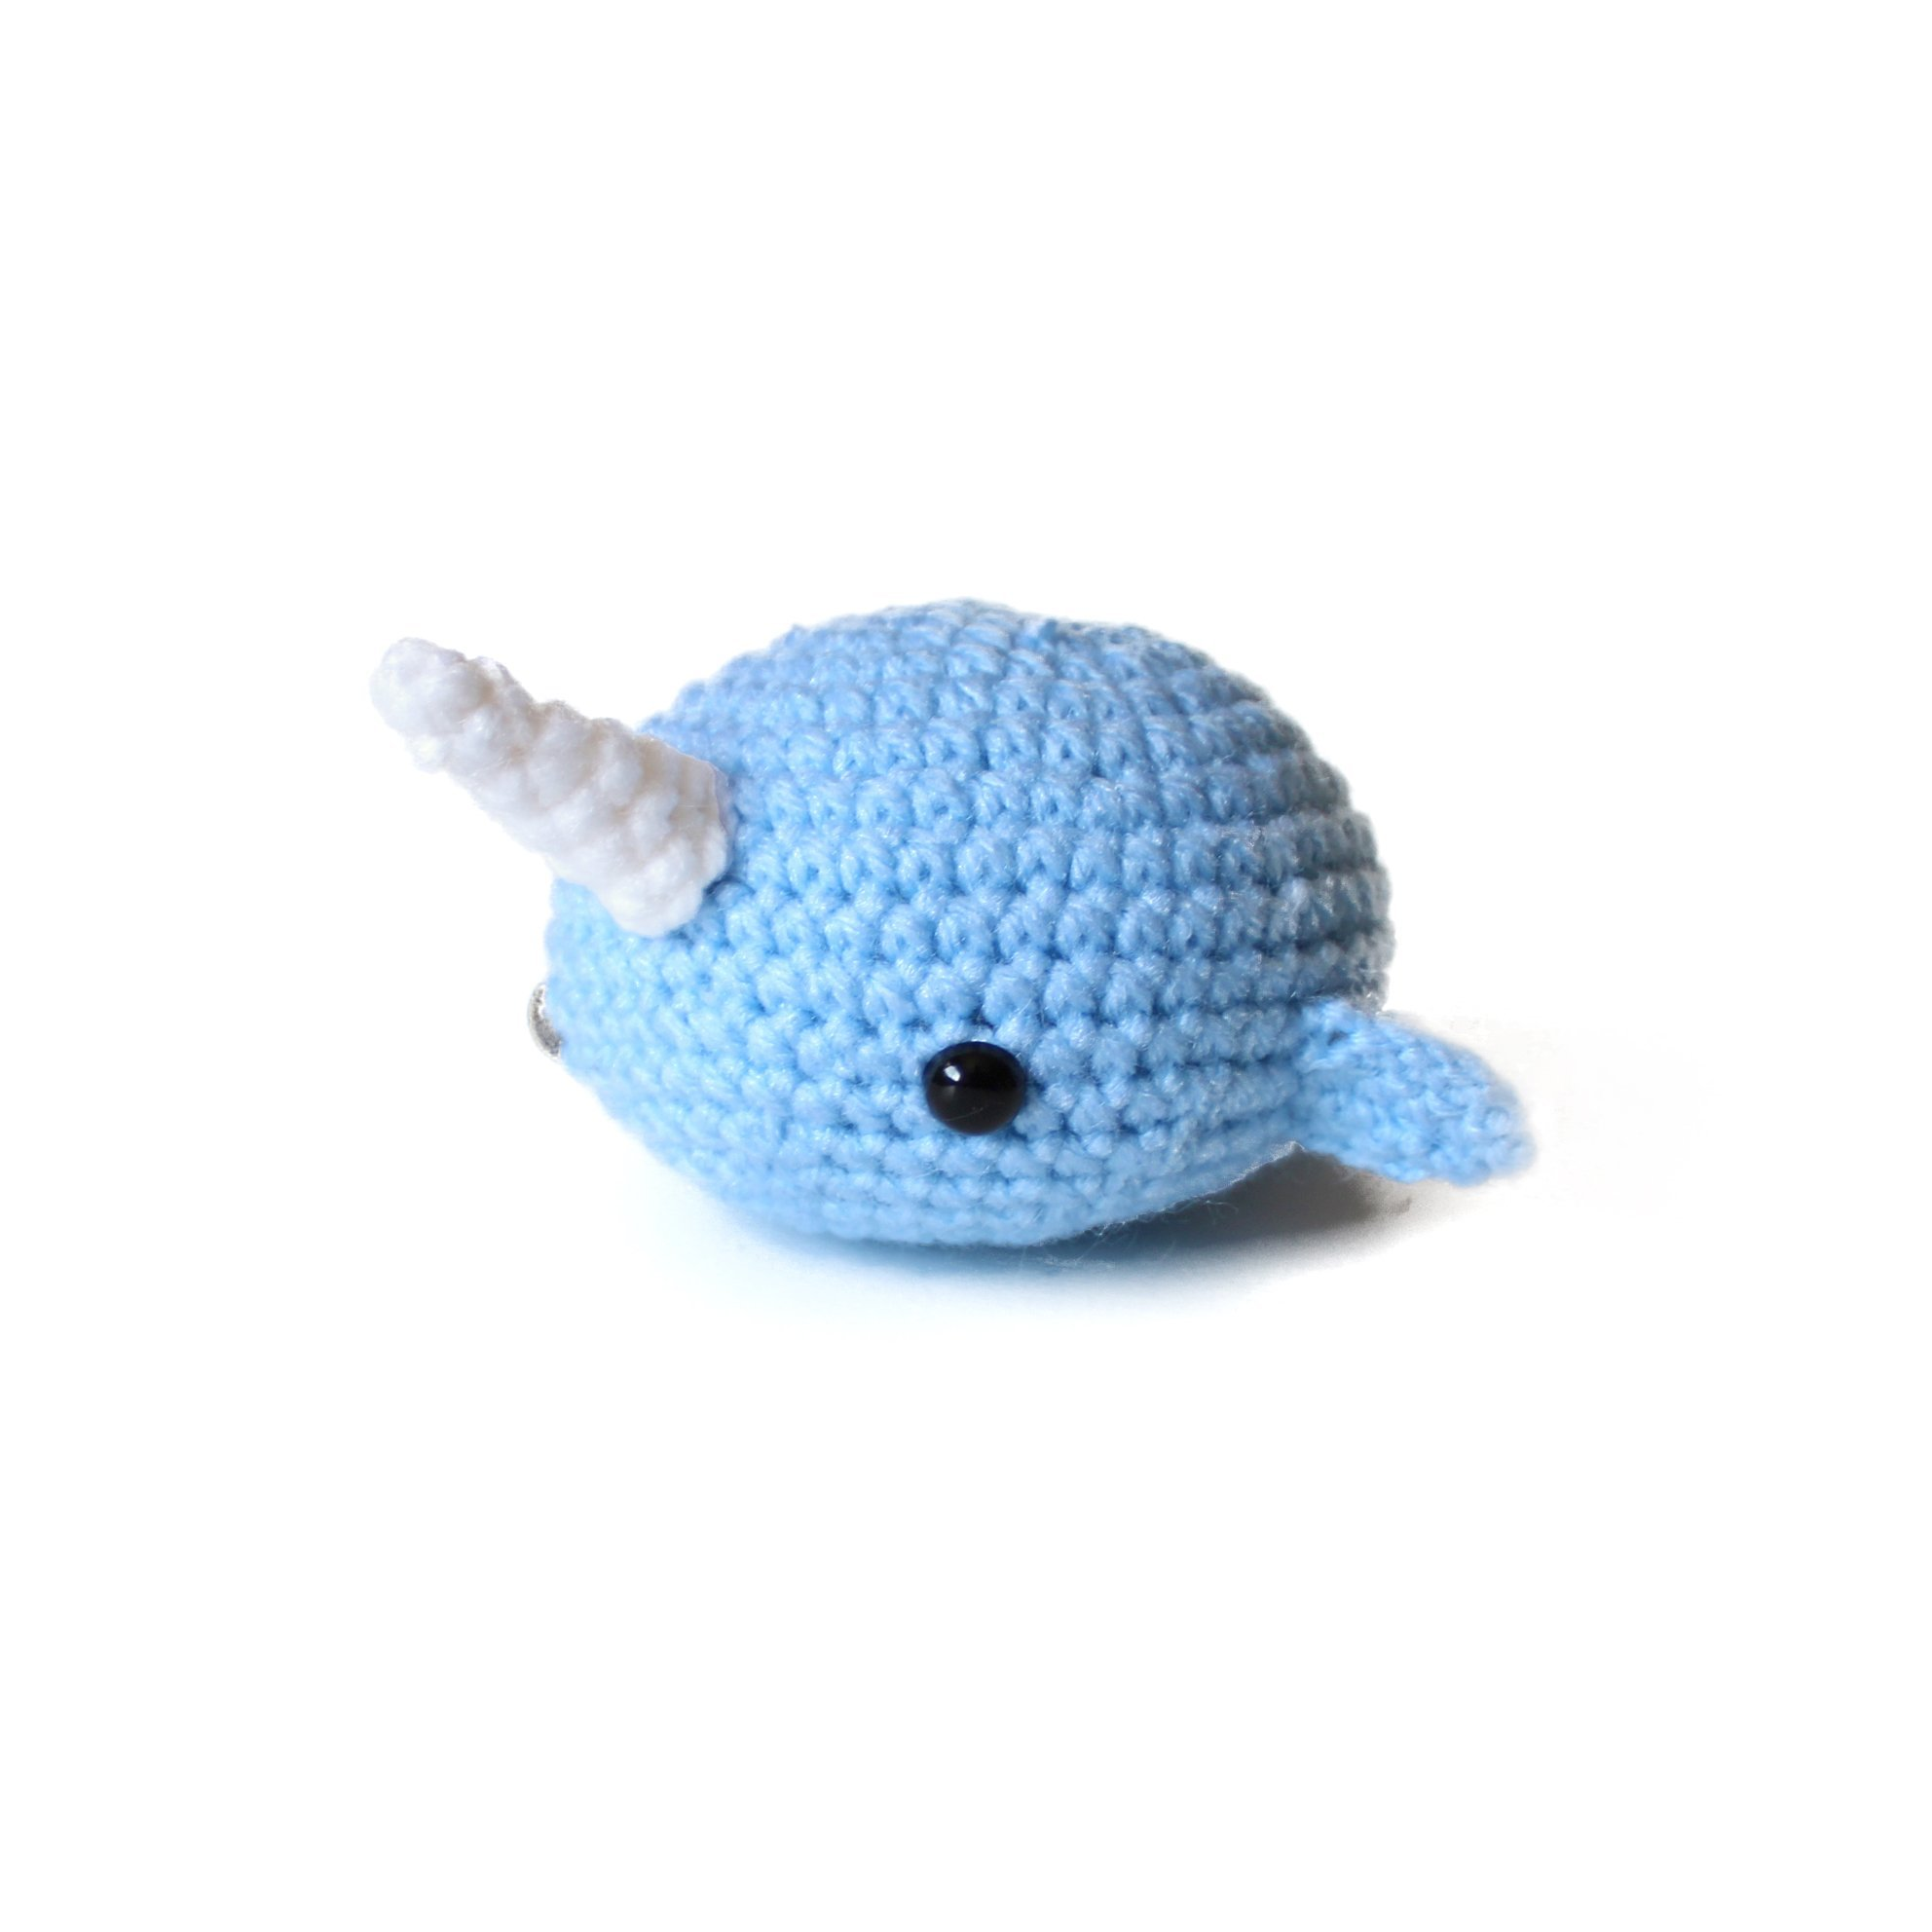 Amigurumi crochet narwhal stress ball by Geekirumi! - Squeeze anti stress/anxiety - Hand therapy toy